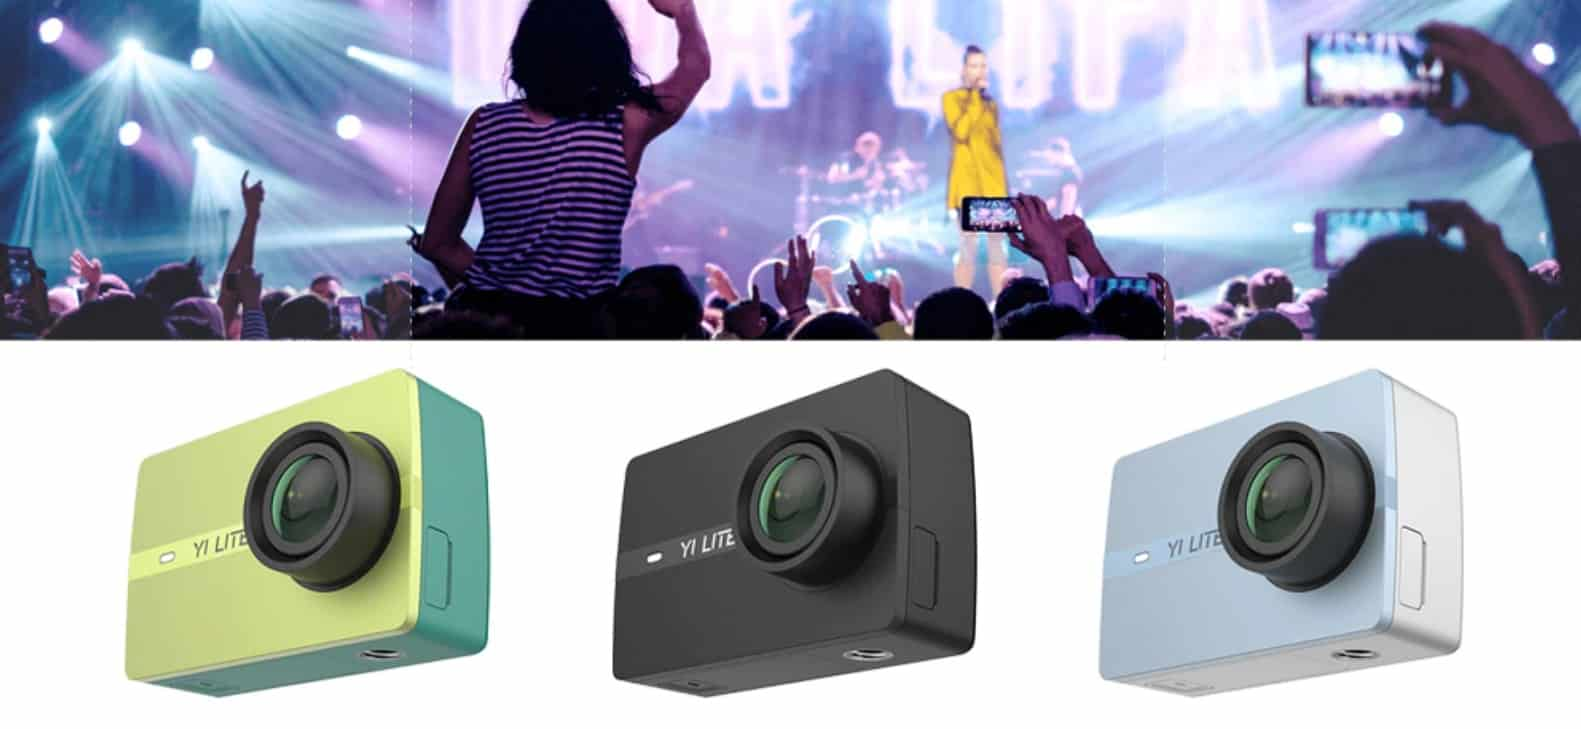 GoPro Alternatives Copy Cheap Action Camera Best Video Quality AliExpress Xiaomi Yi Lite2